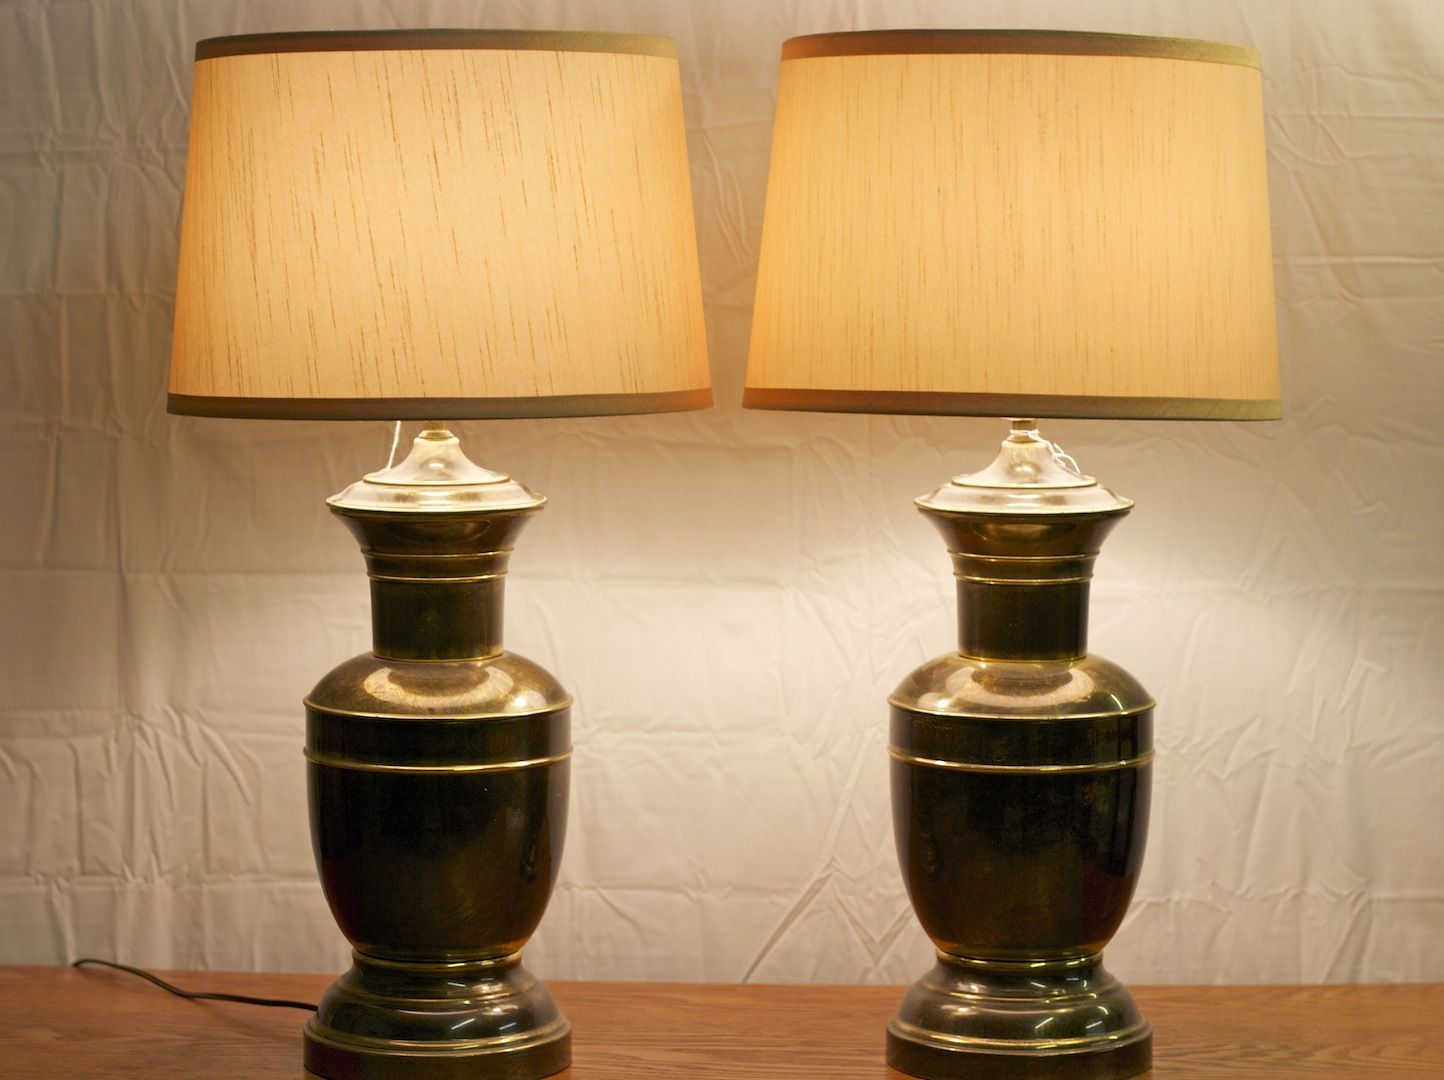 Antique brass table lamp table lamps pinterest nightstand antique brass table lamp mozeypictures Images